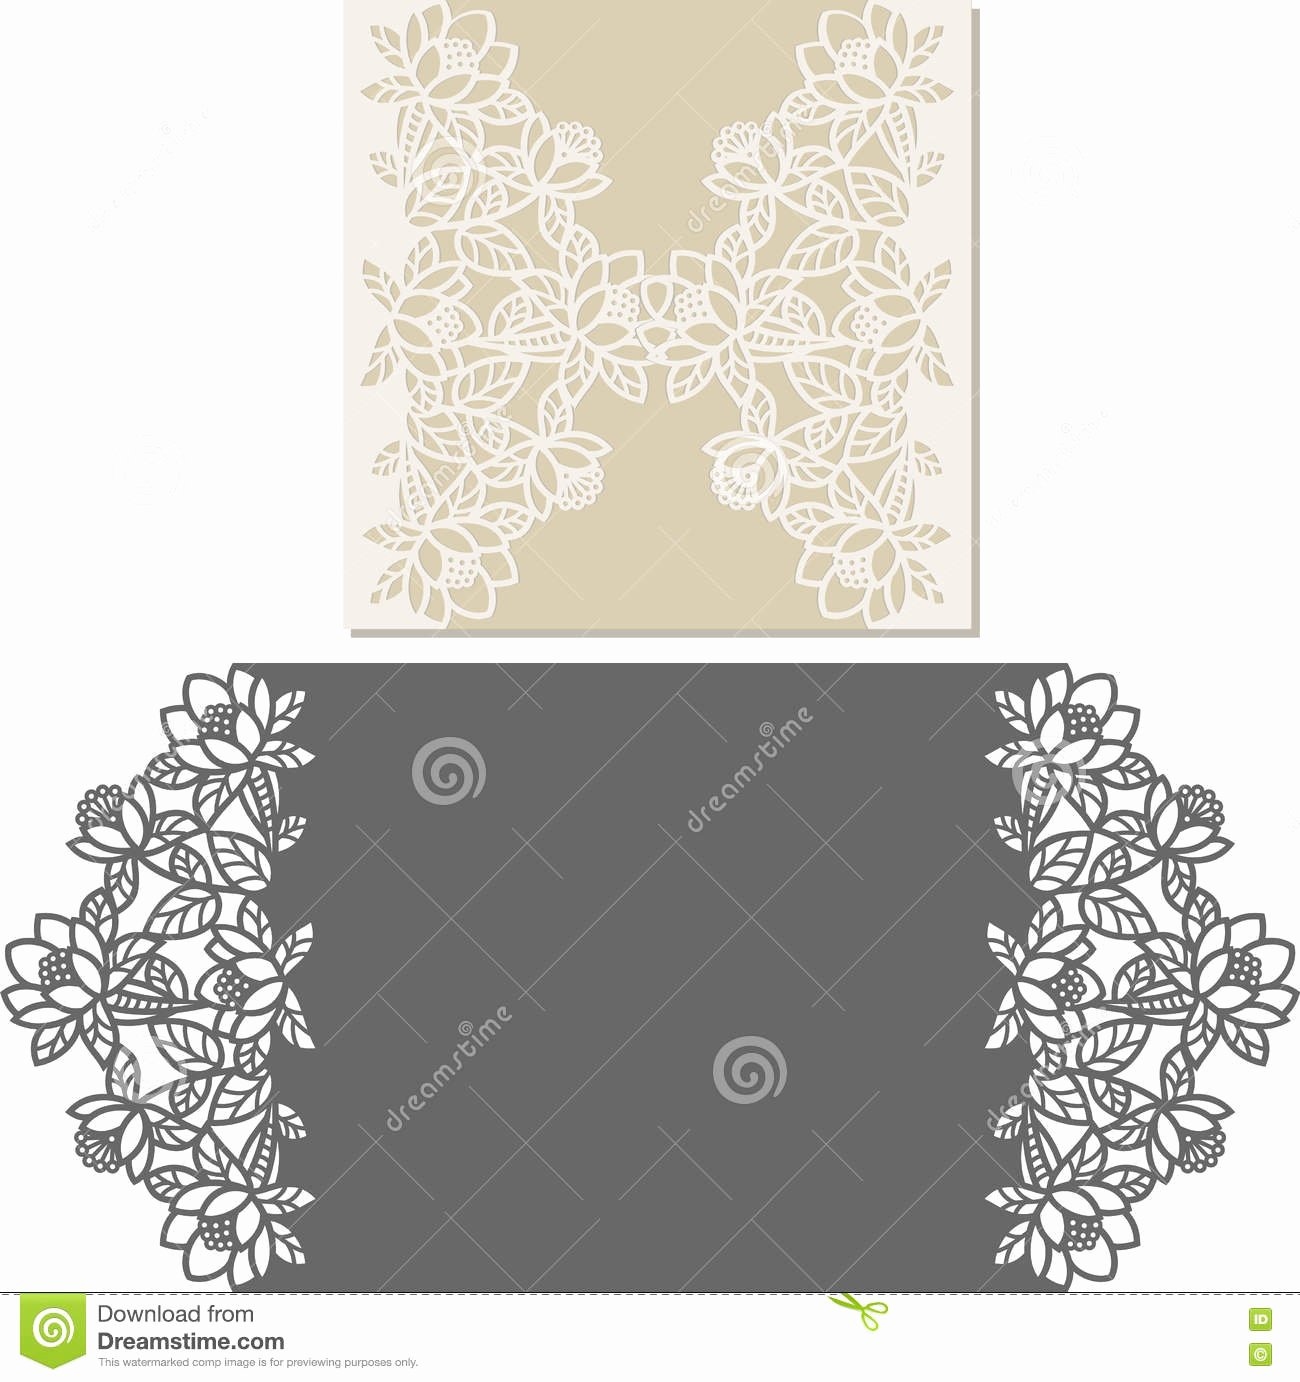 Bridesmaid Card Template Lovely Envelope Cartoons Illustrations & Vector Stock